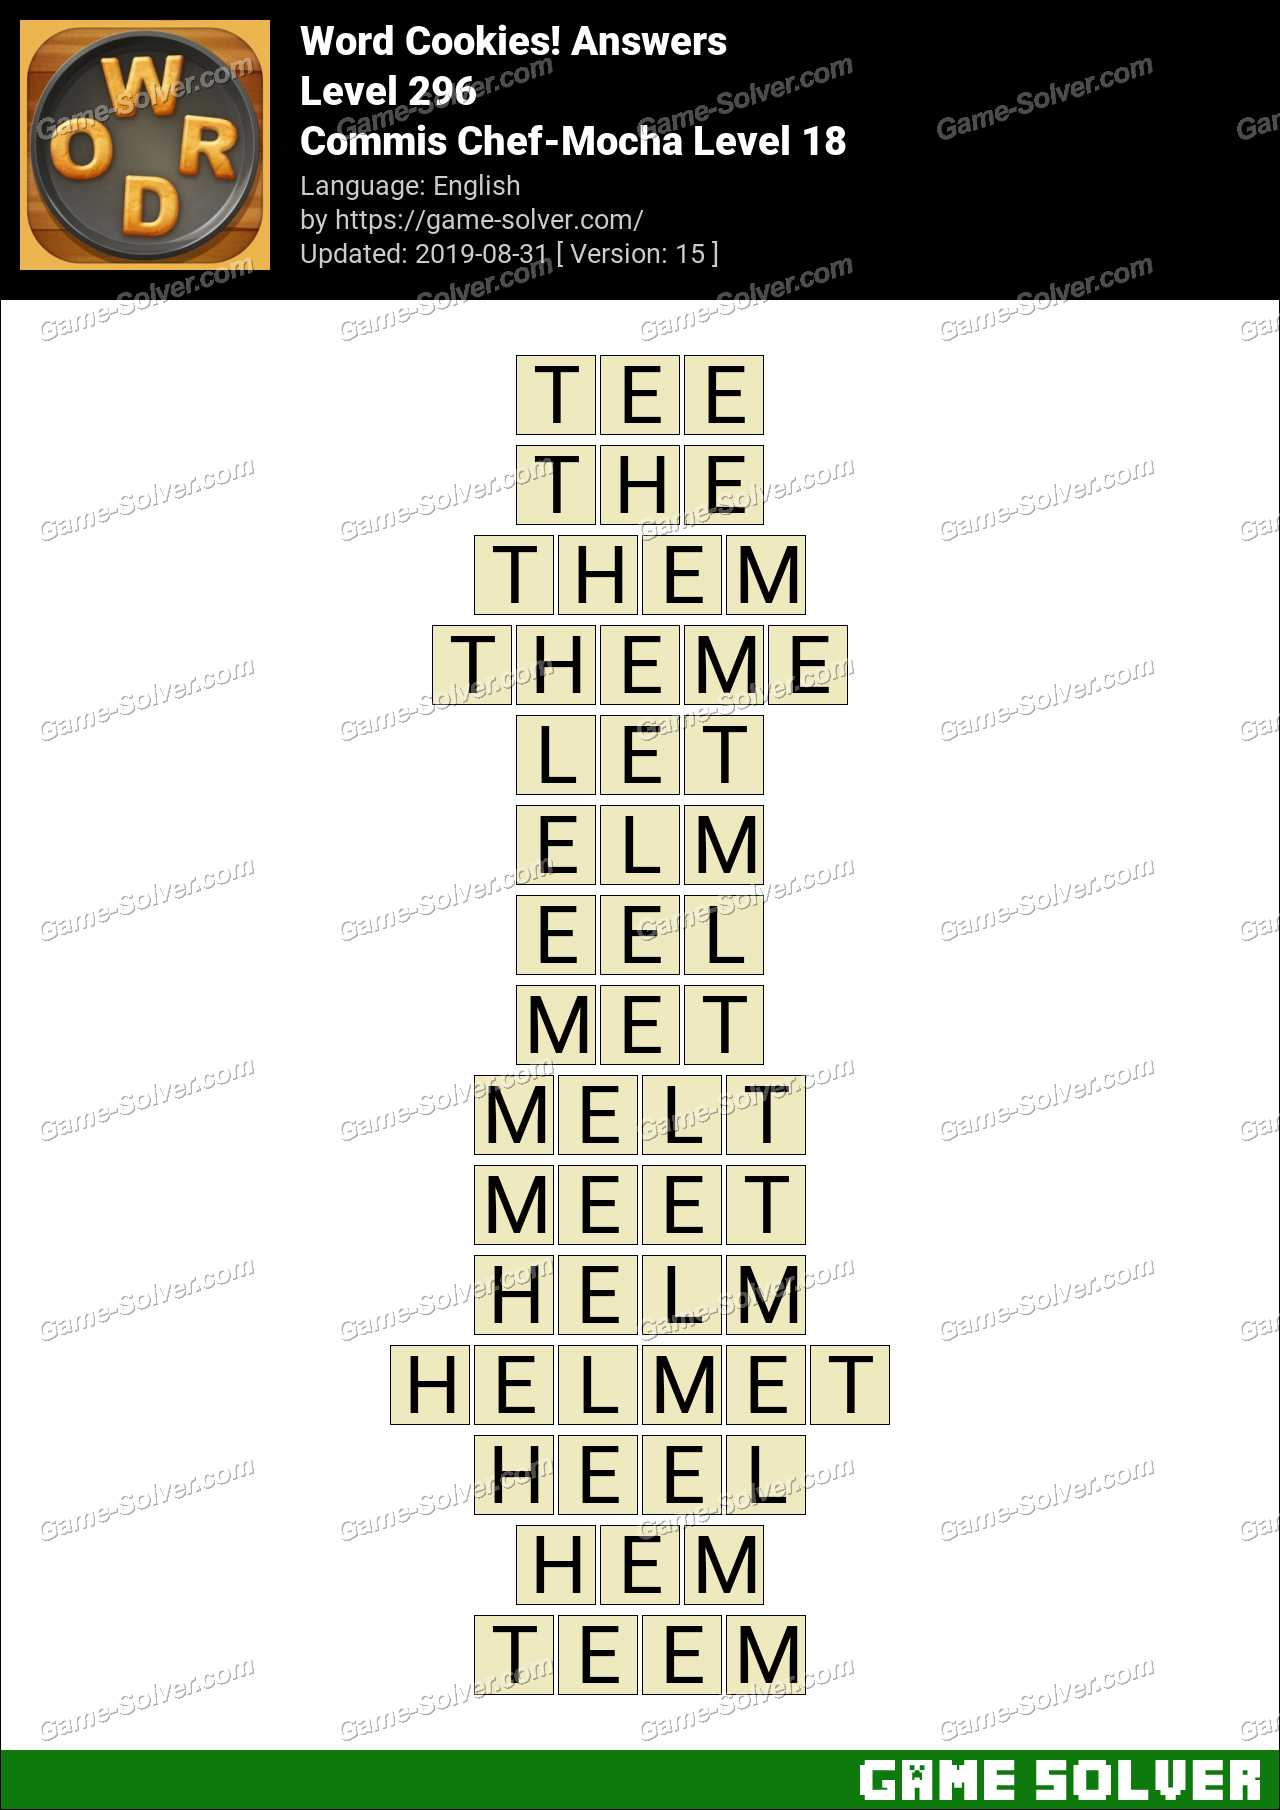 Word Cookies Commis Chef-Mocha Level 18 Answers